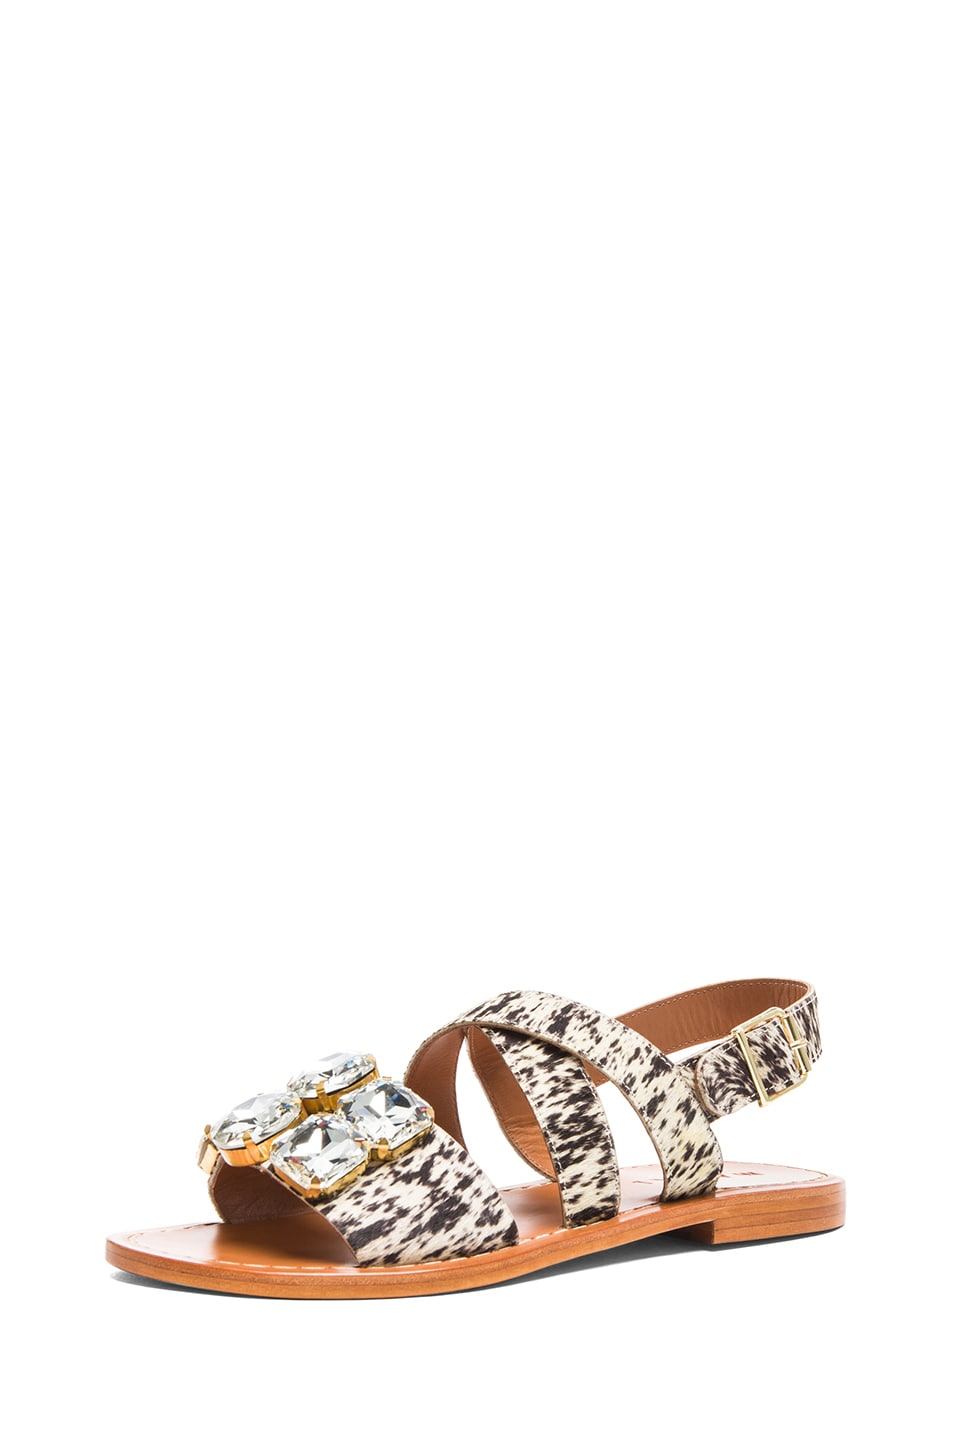 Image 2 of Marni Calf Hair Embellished Sandals with Large Stones in Leopard